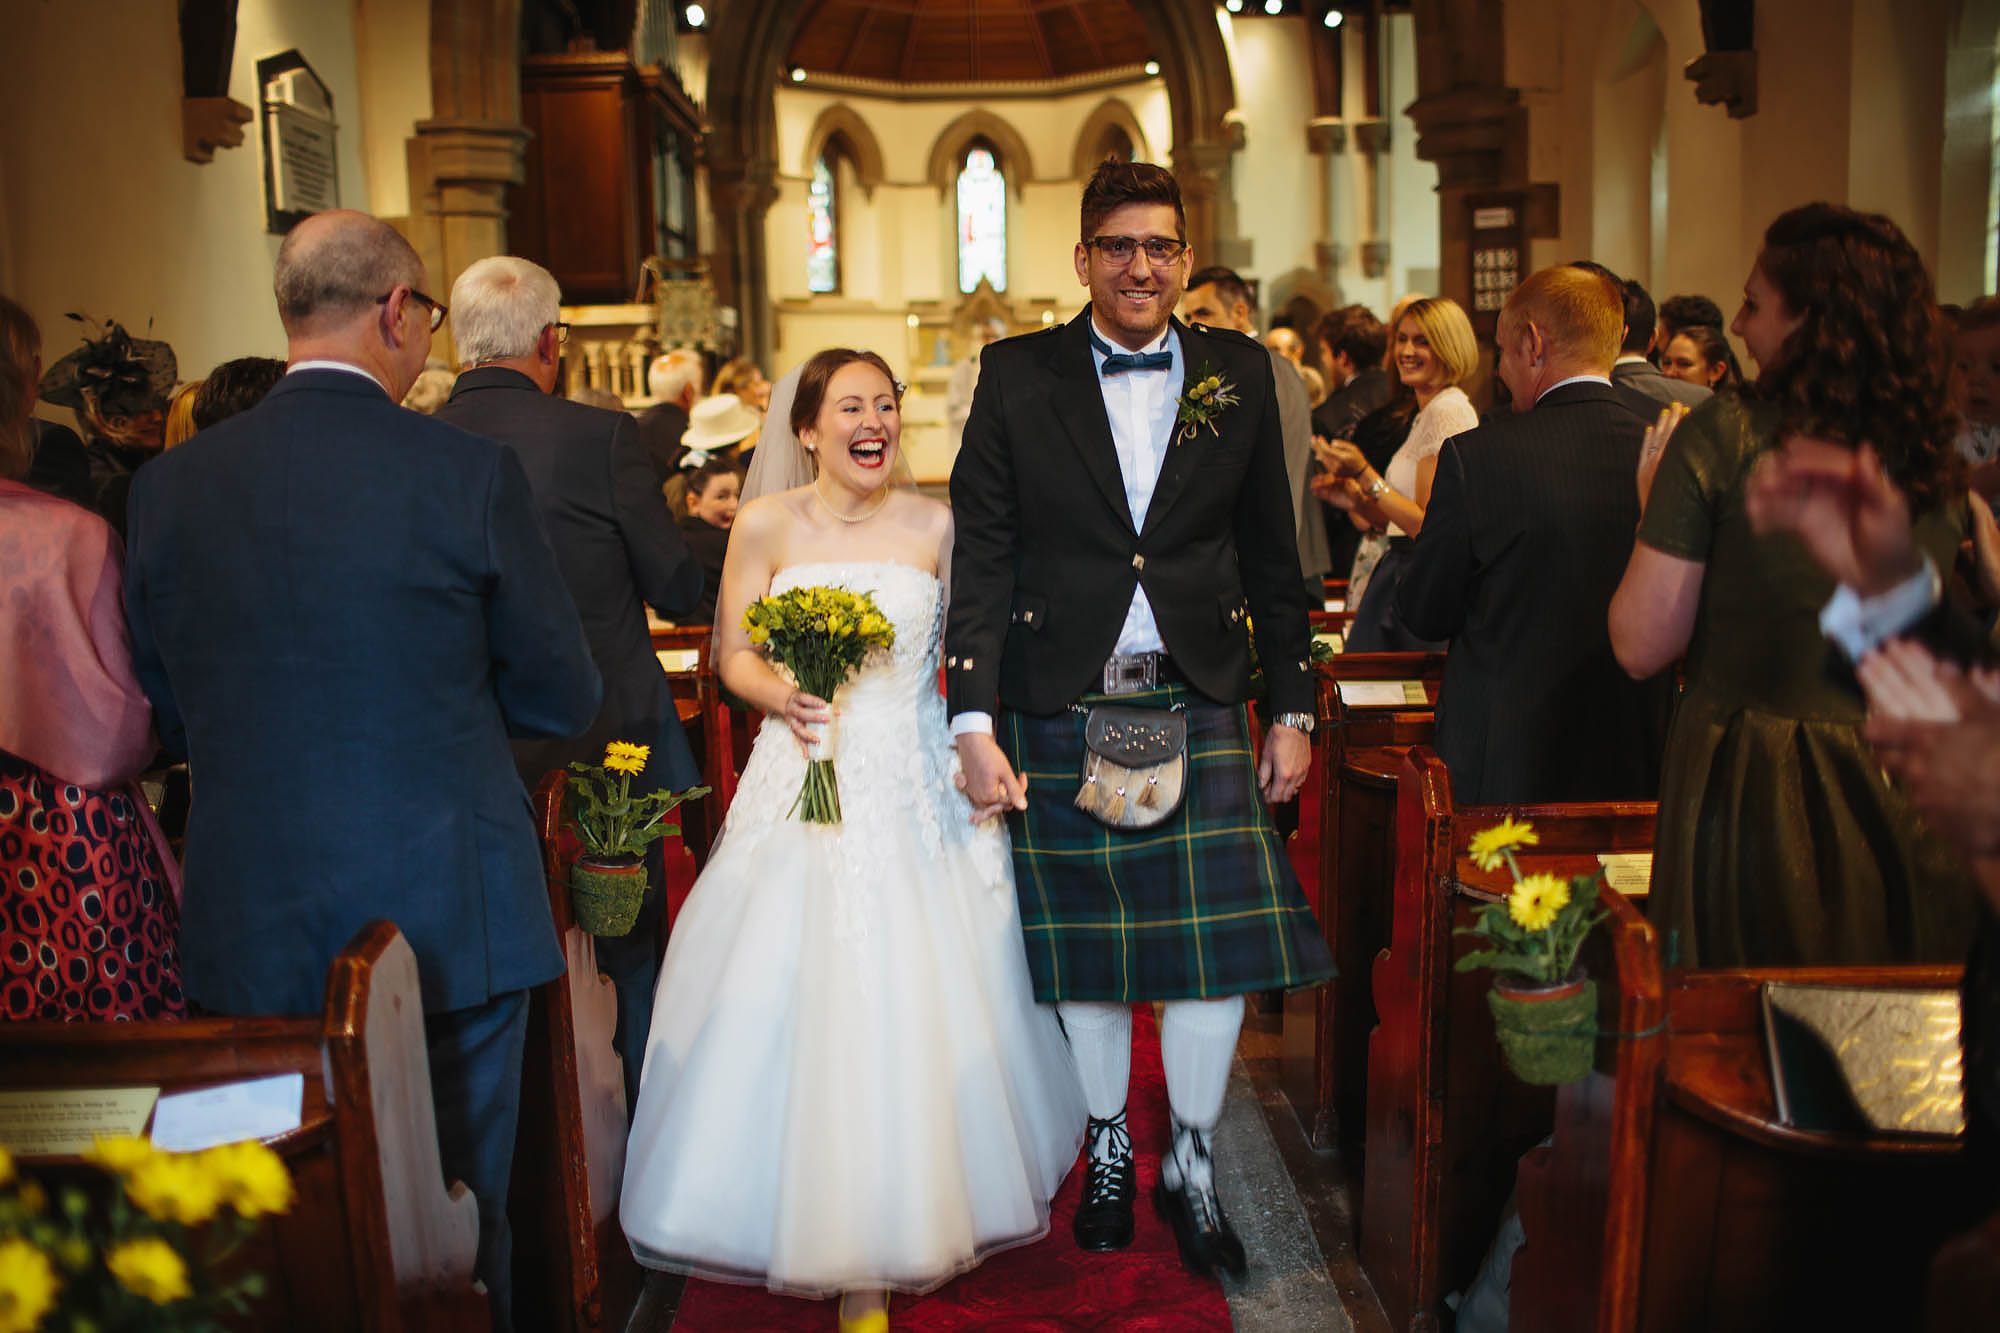 Leeds Yorkshire Wedding Photographer Bride Groom Married Church